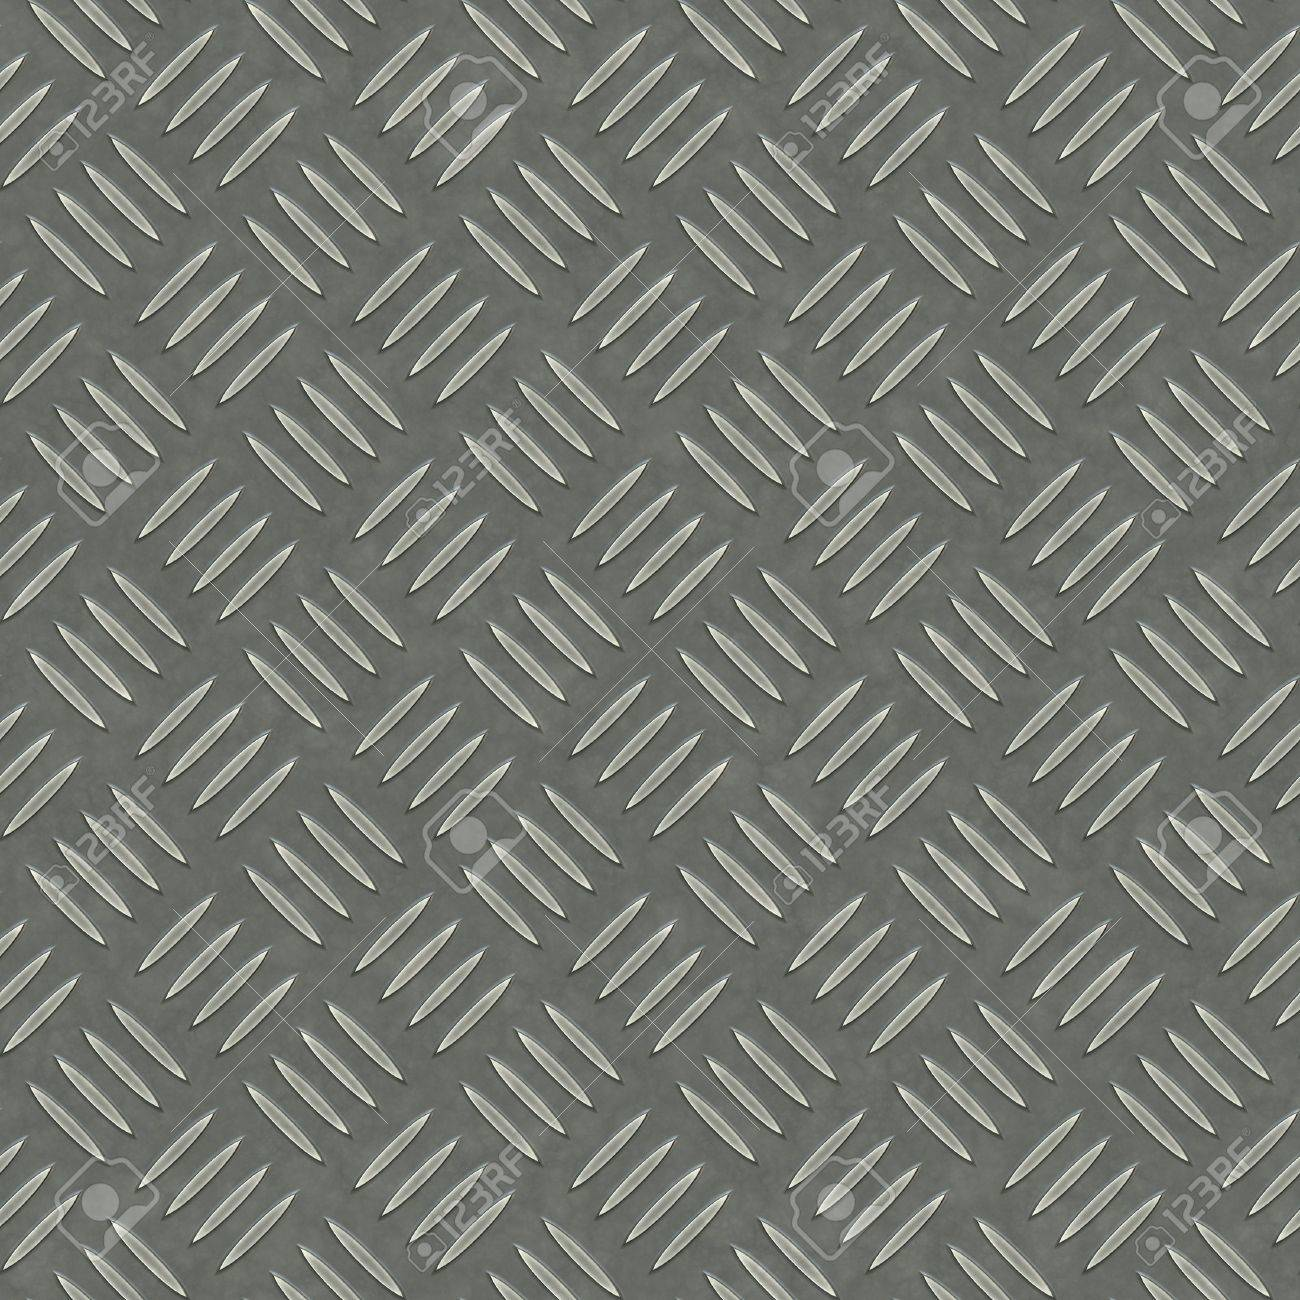 Seamless new metallic panel texture used in non slippery surfaces Stock Photo - 6354791